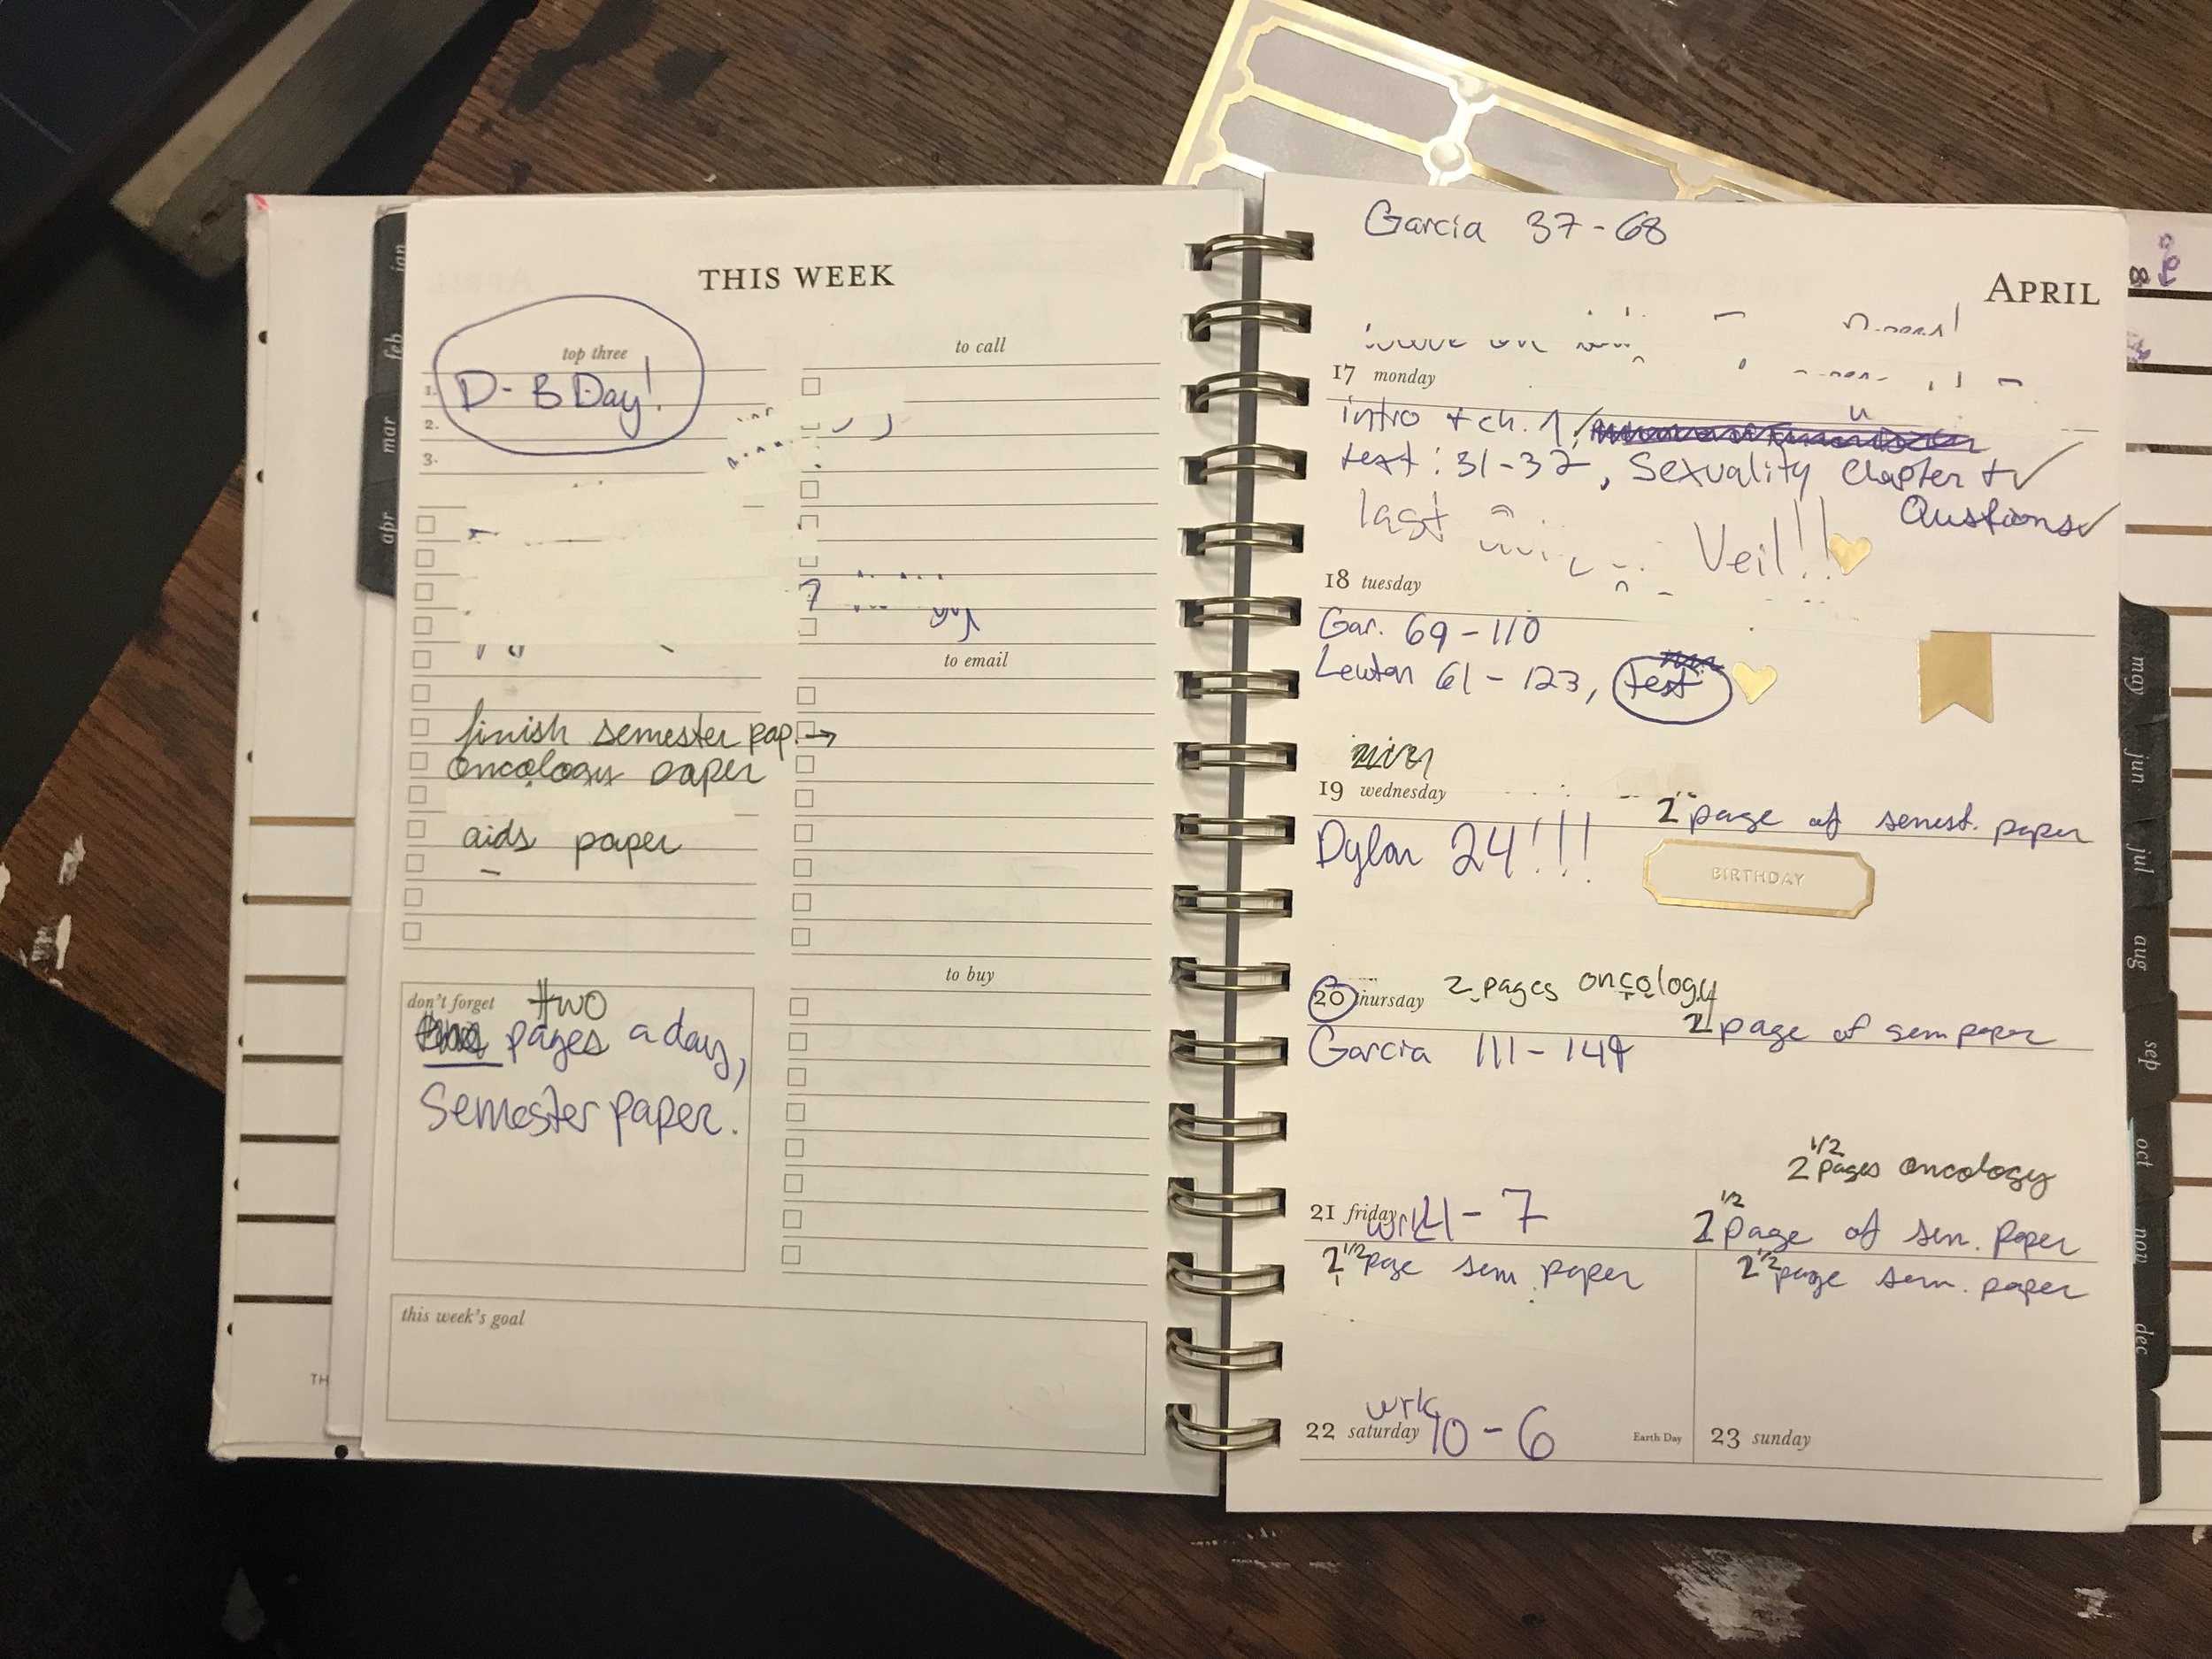 Here's an example of a weekly page, I used whiteout on tasks I completed early.